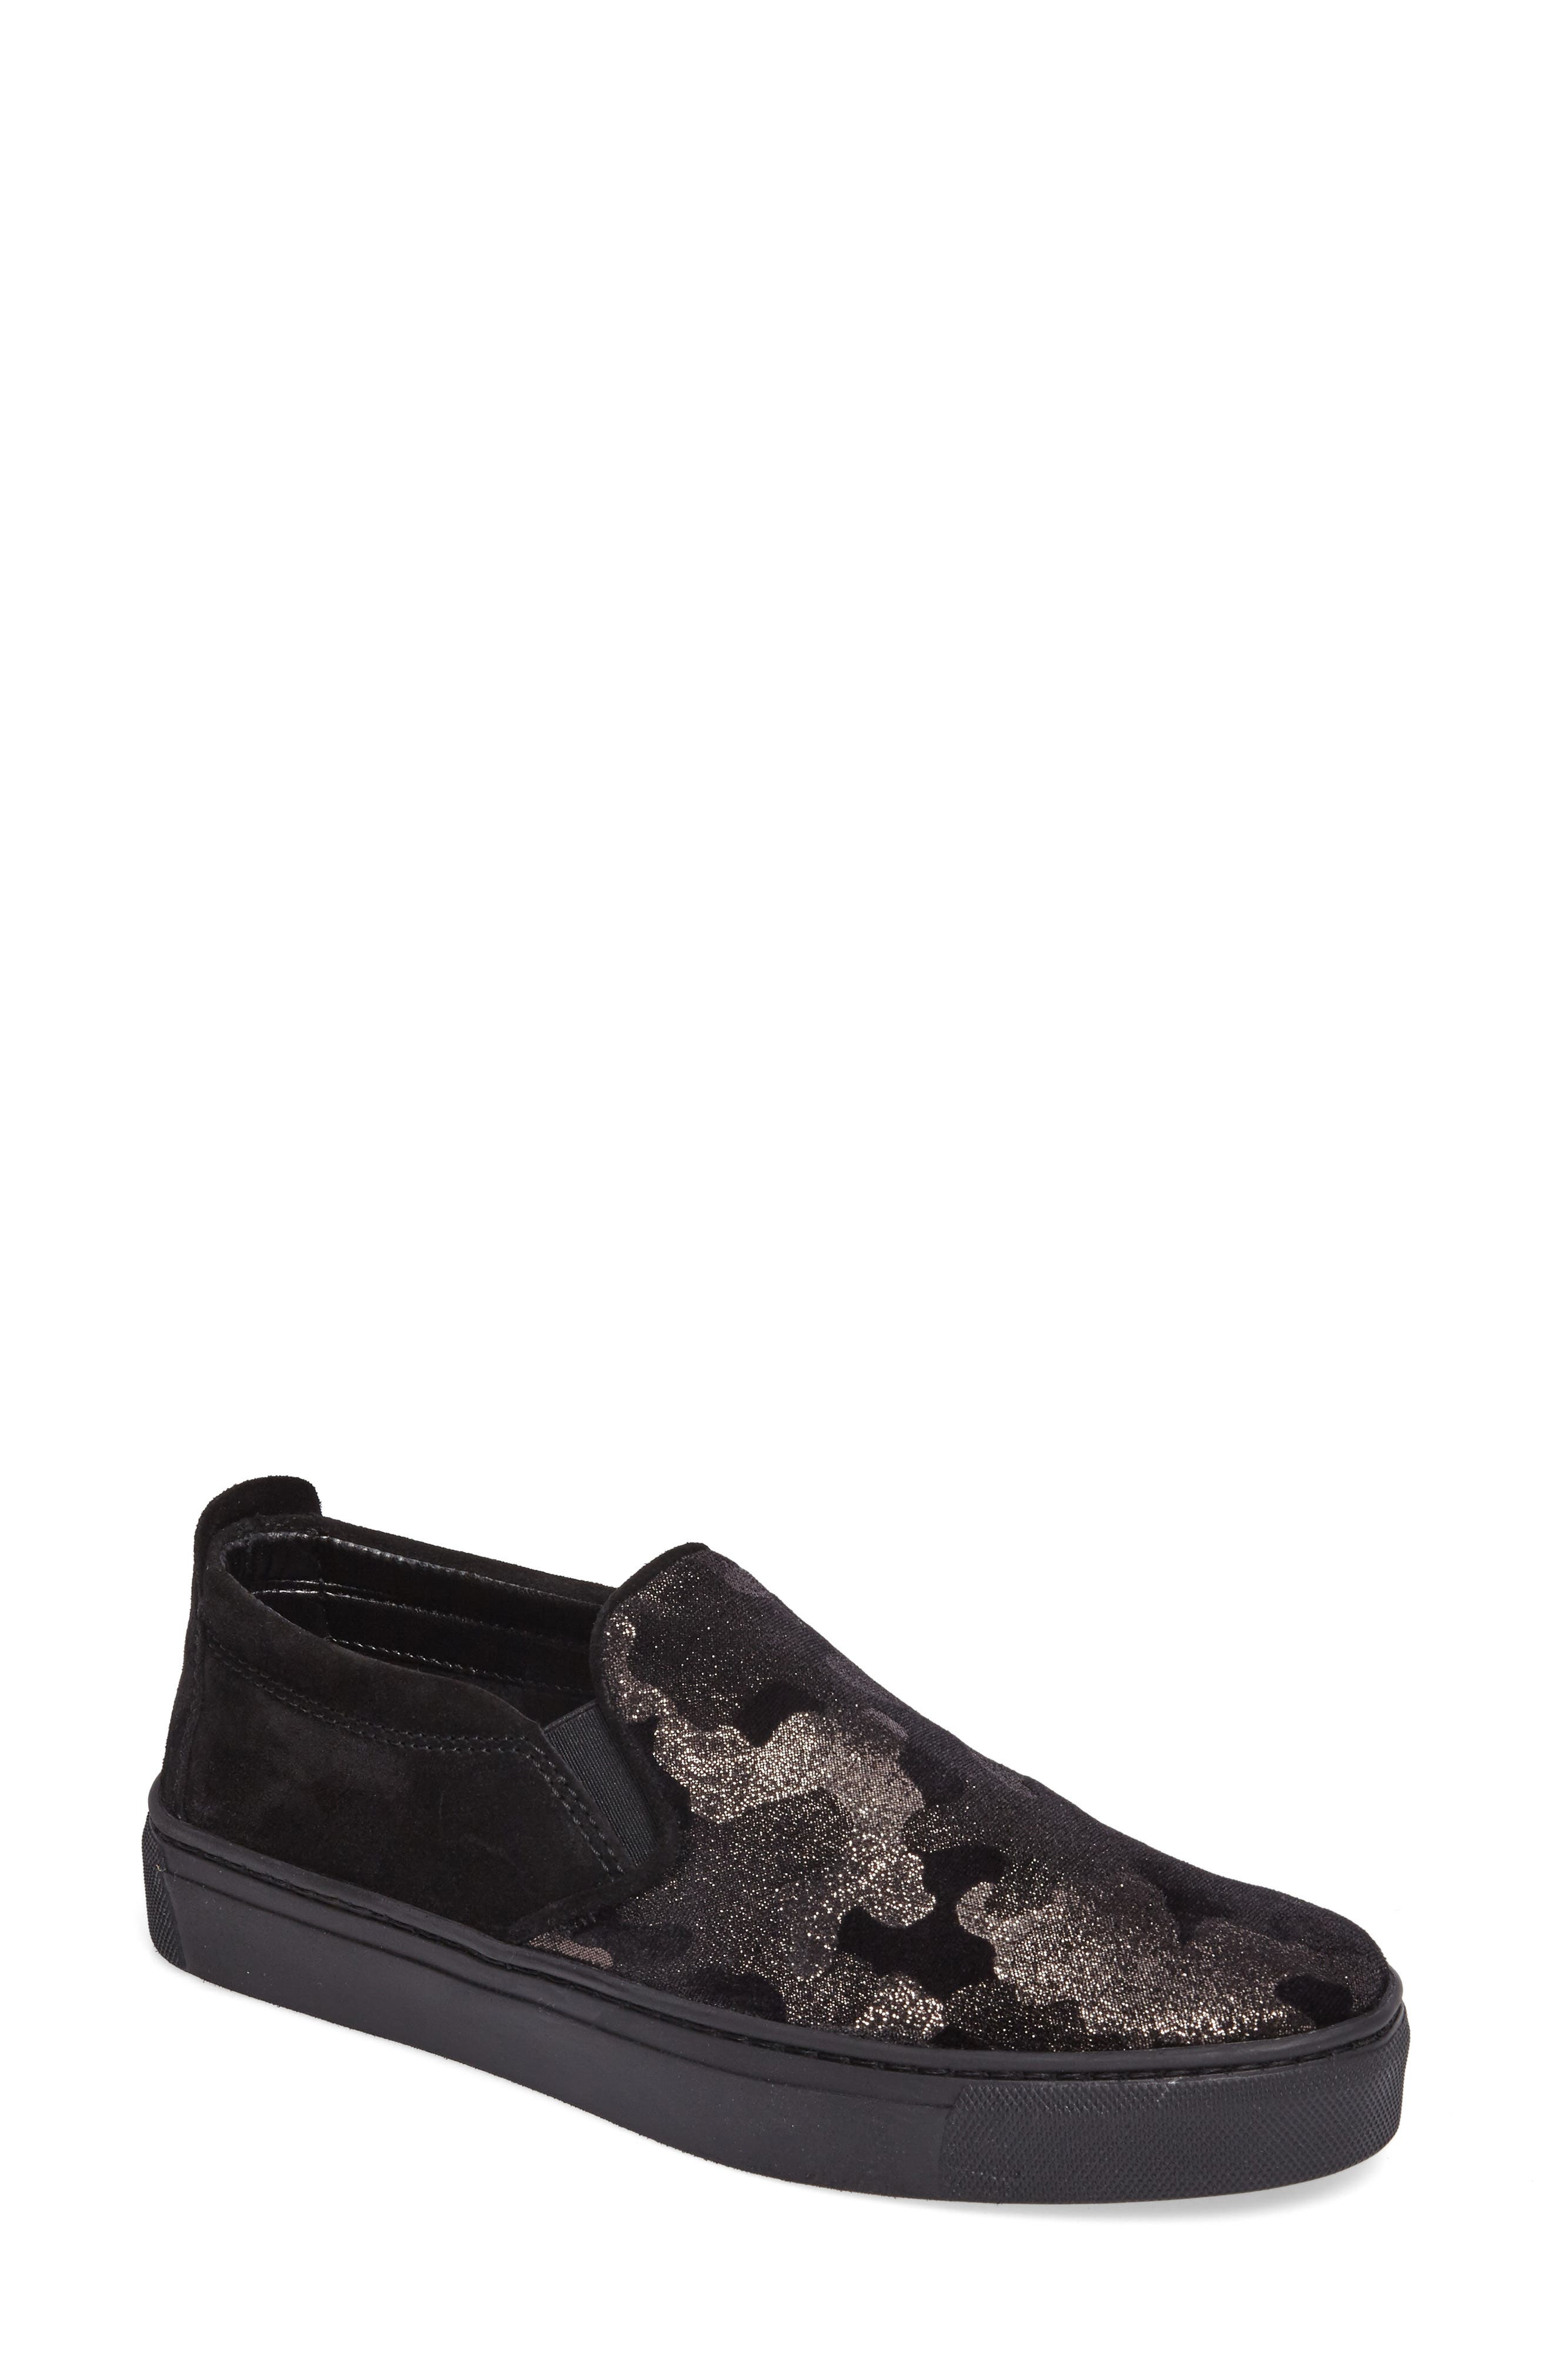 Full Time Sneaker,                         Main,                         color, BLACK SUEDE